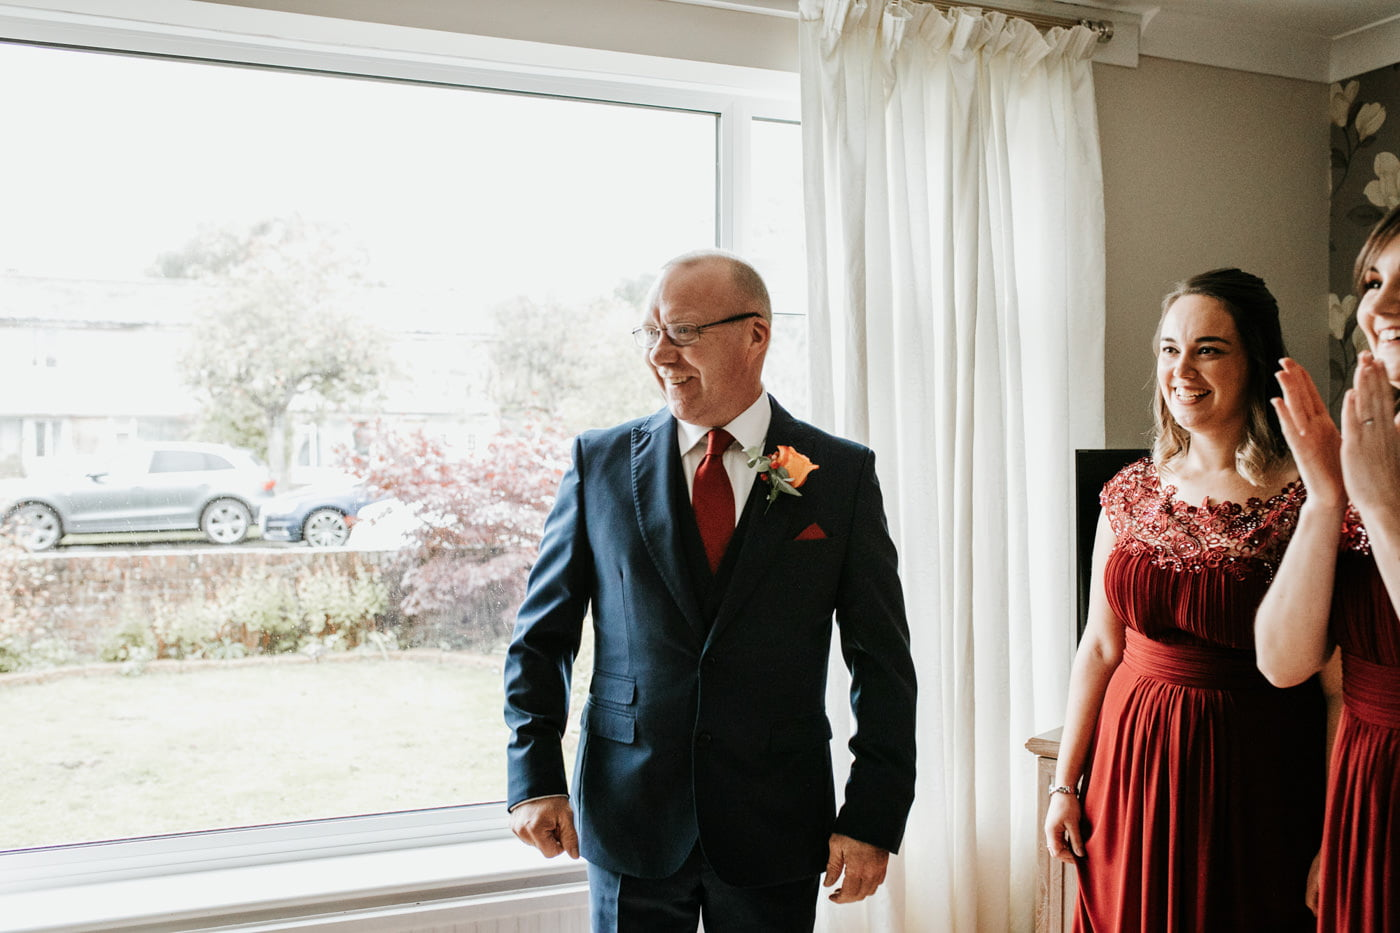 Natalie and Rob, Widbrook Grange, Wiltshire 83